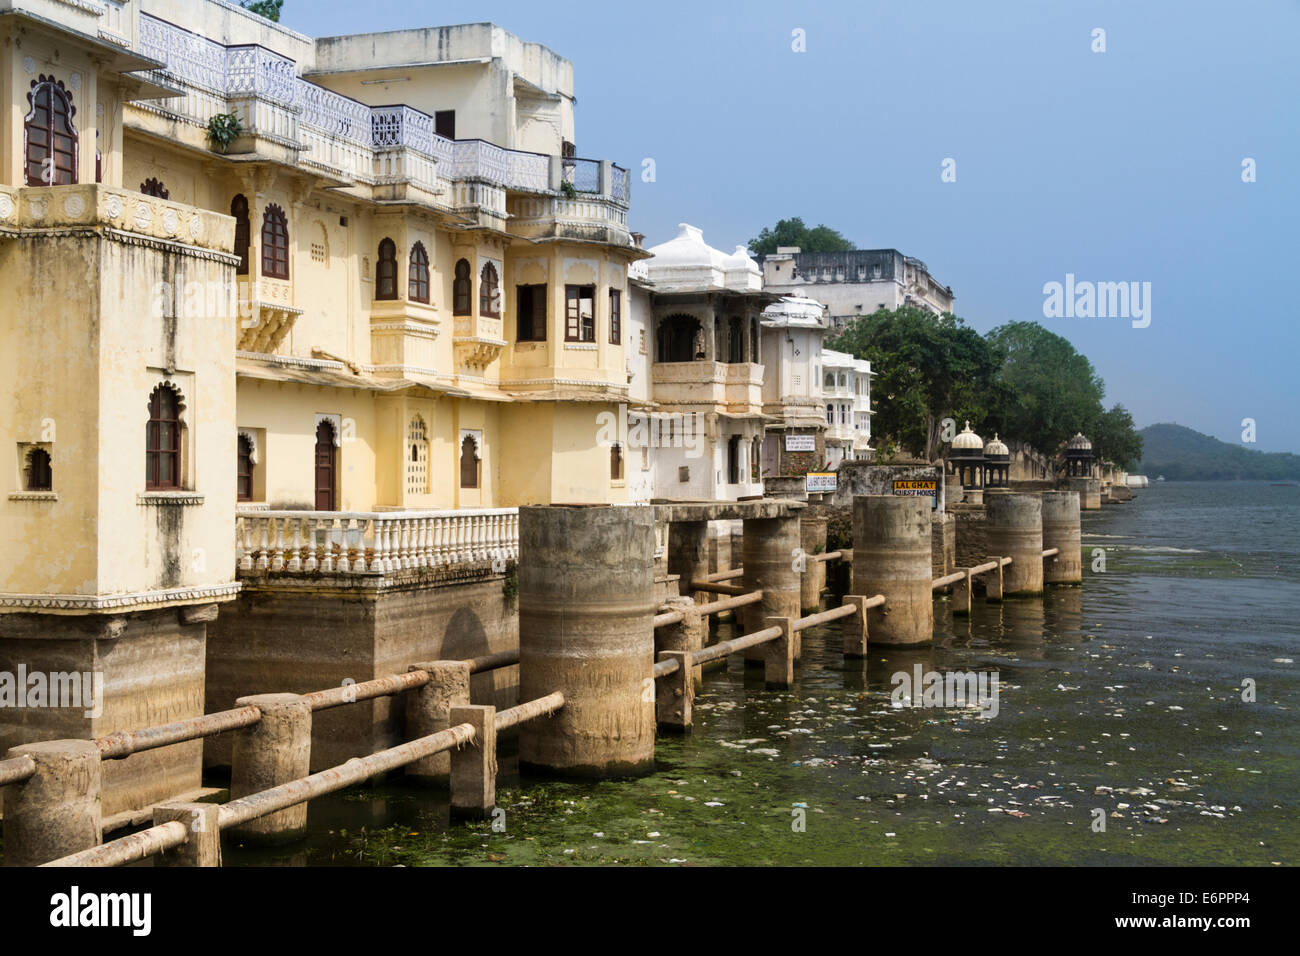 Guest houses on the banks of Lake Pichola, Udaipur, Rajastan, India Stock Photo